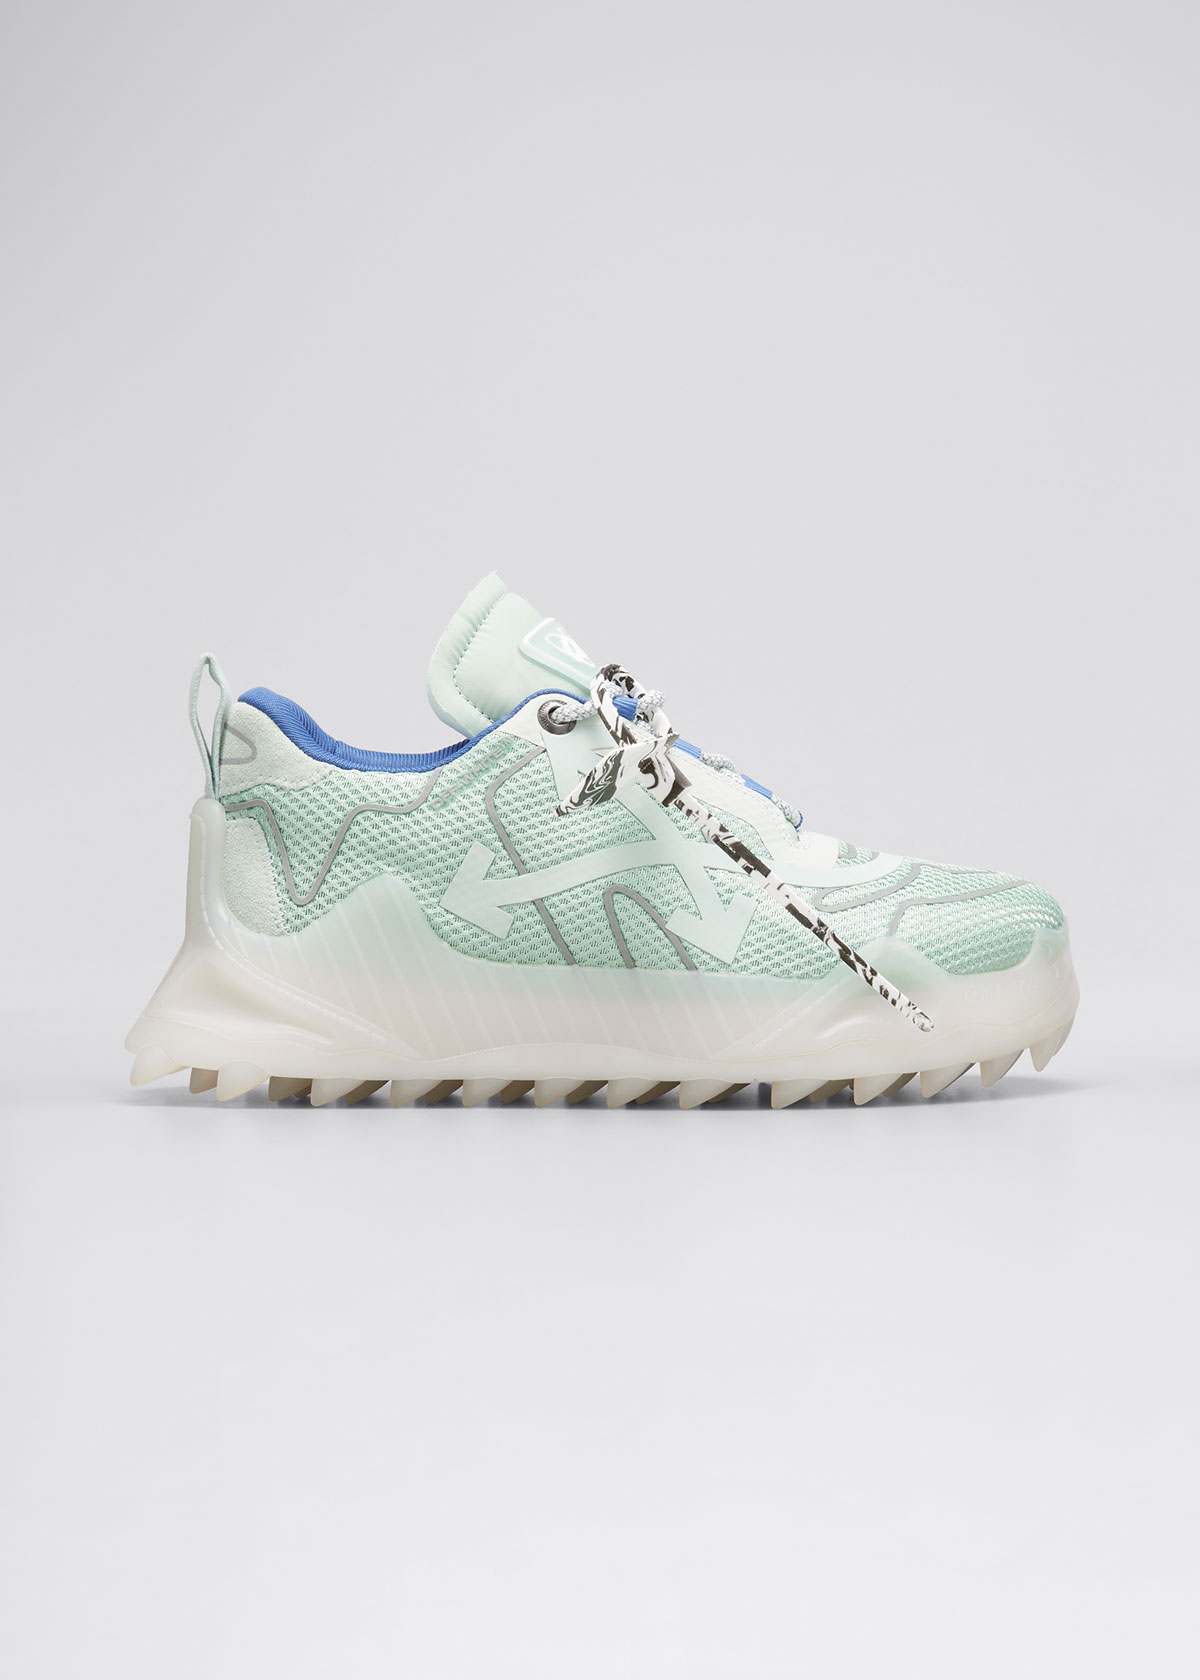 Off-White MEN'S ODSY-1000 OUTLINE SCULPTED-SOLE SNEAKERS, MINT SILVER